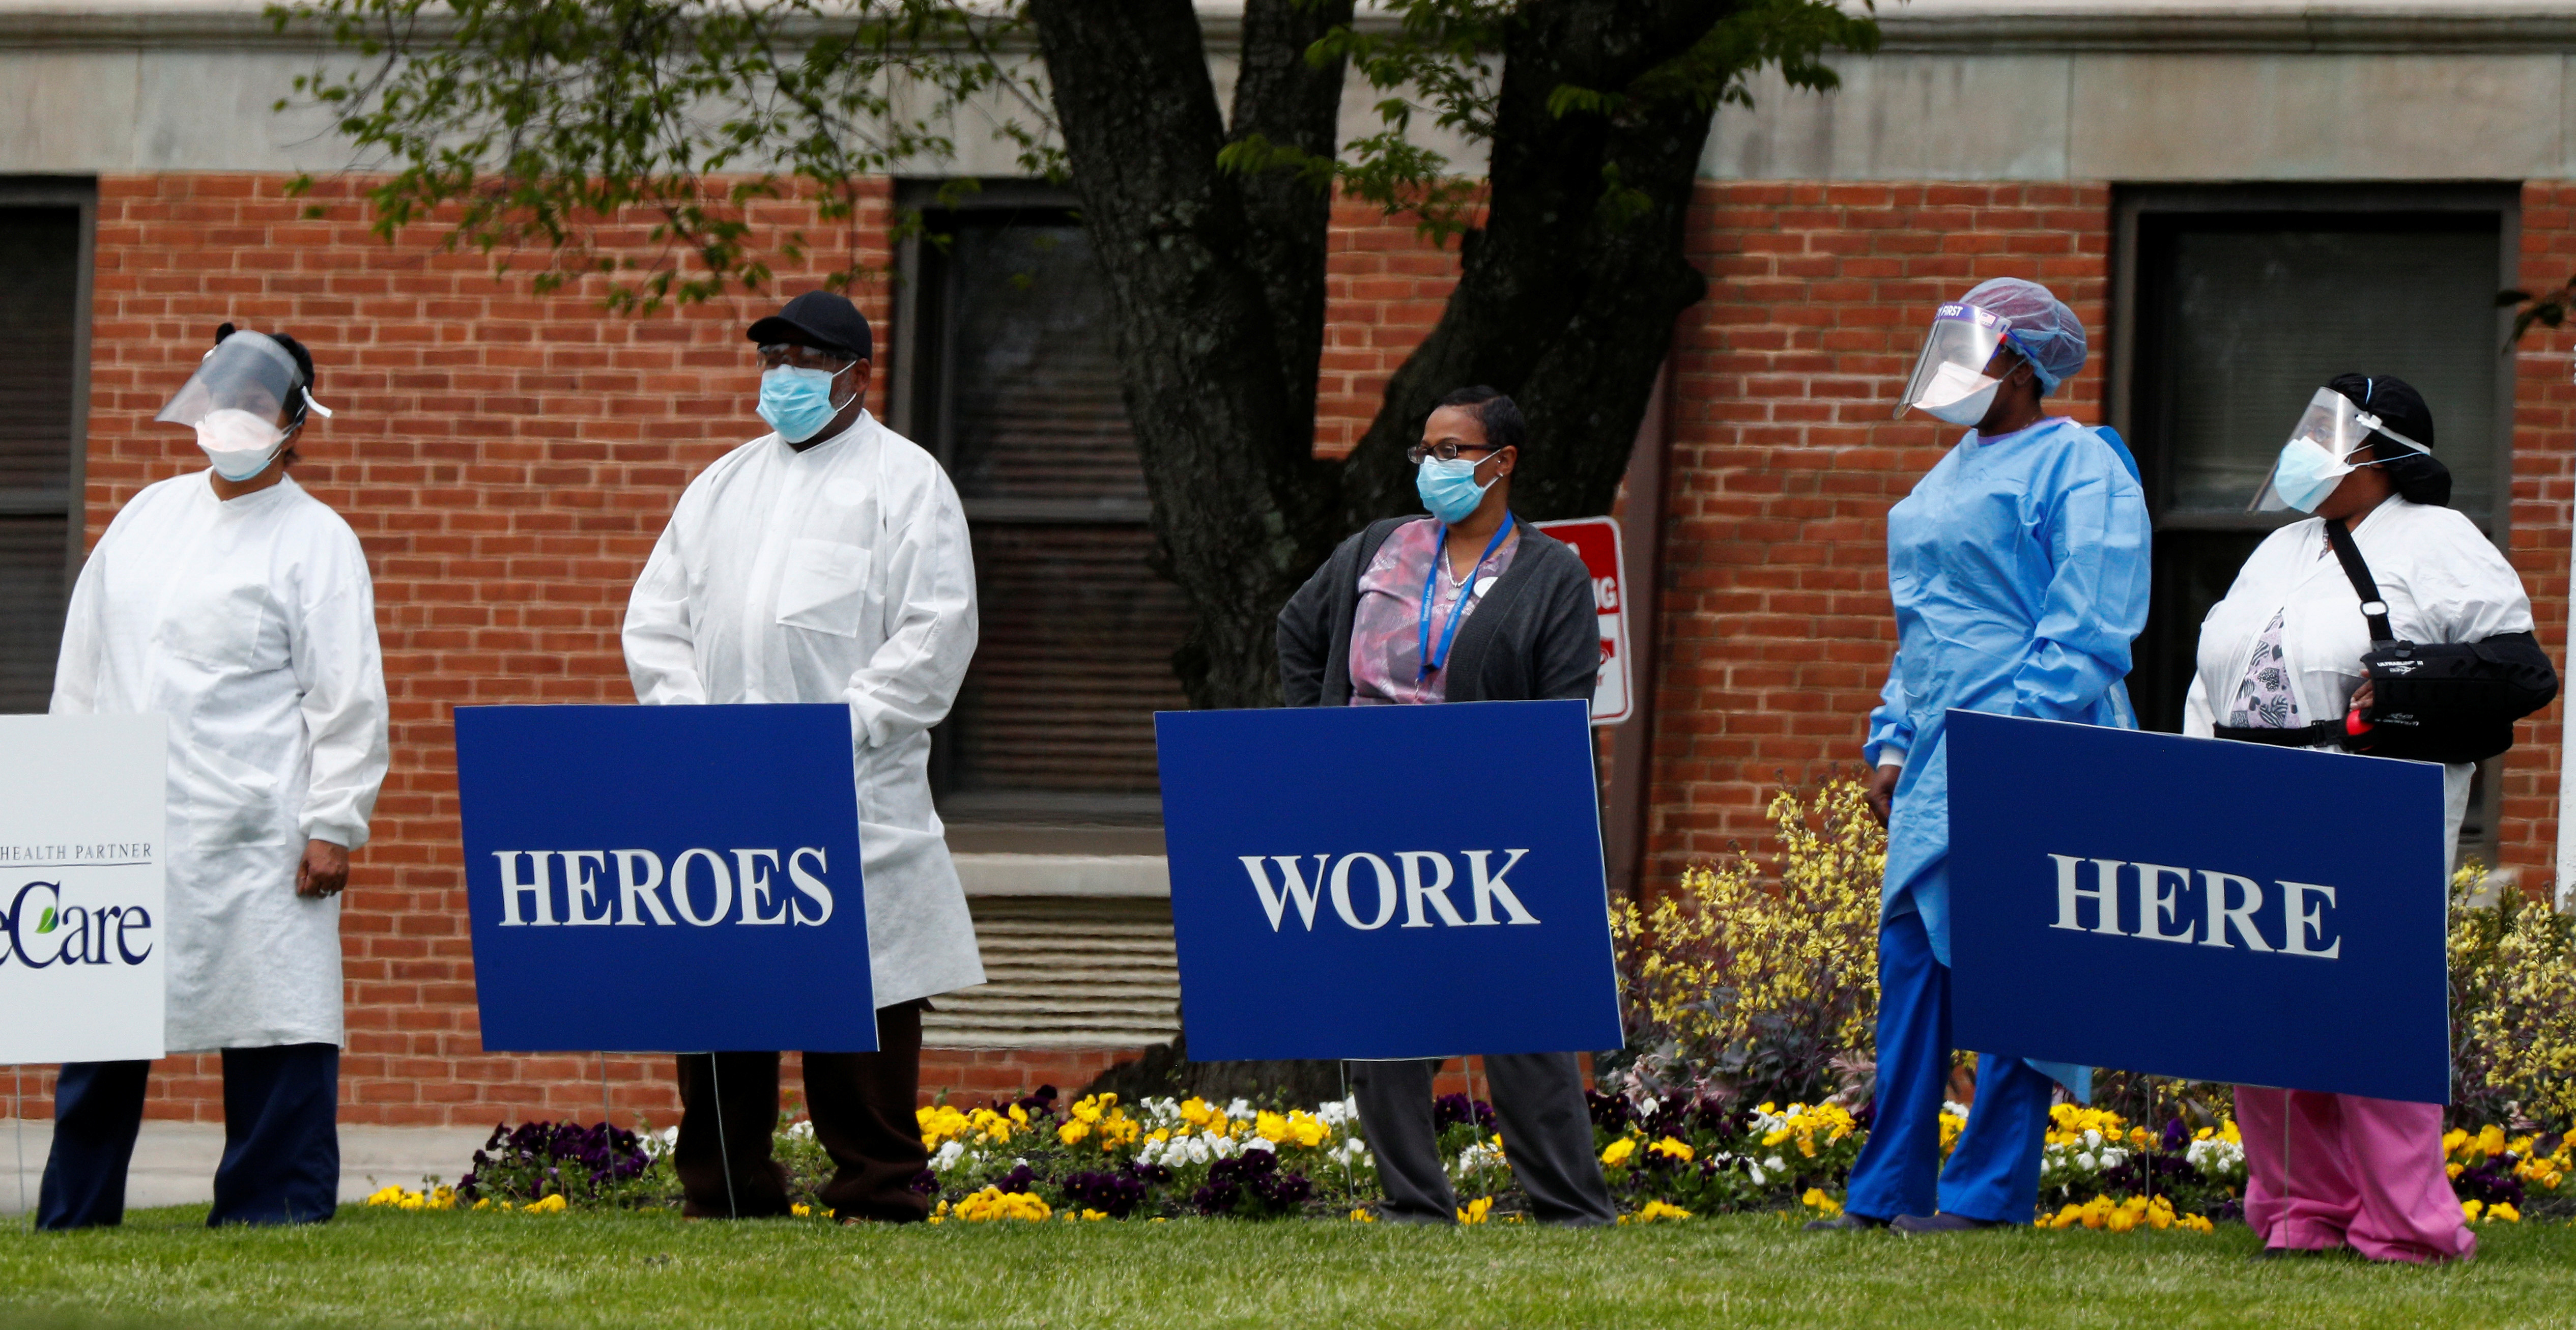 Medical workers pose for photos taken by coworkers as they stand with signs saying